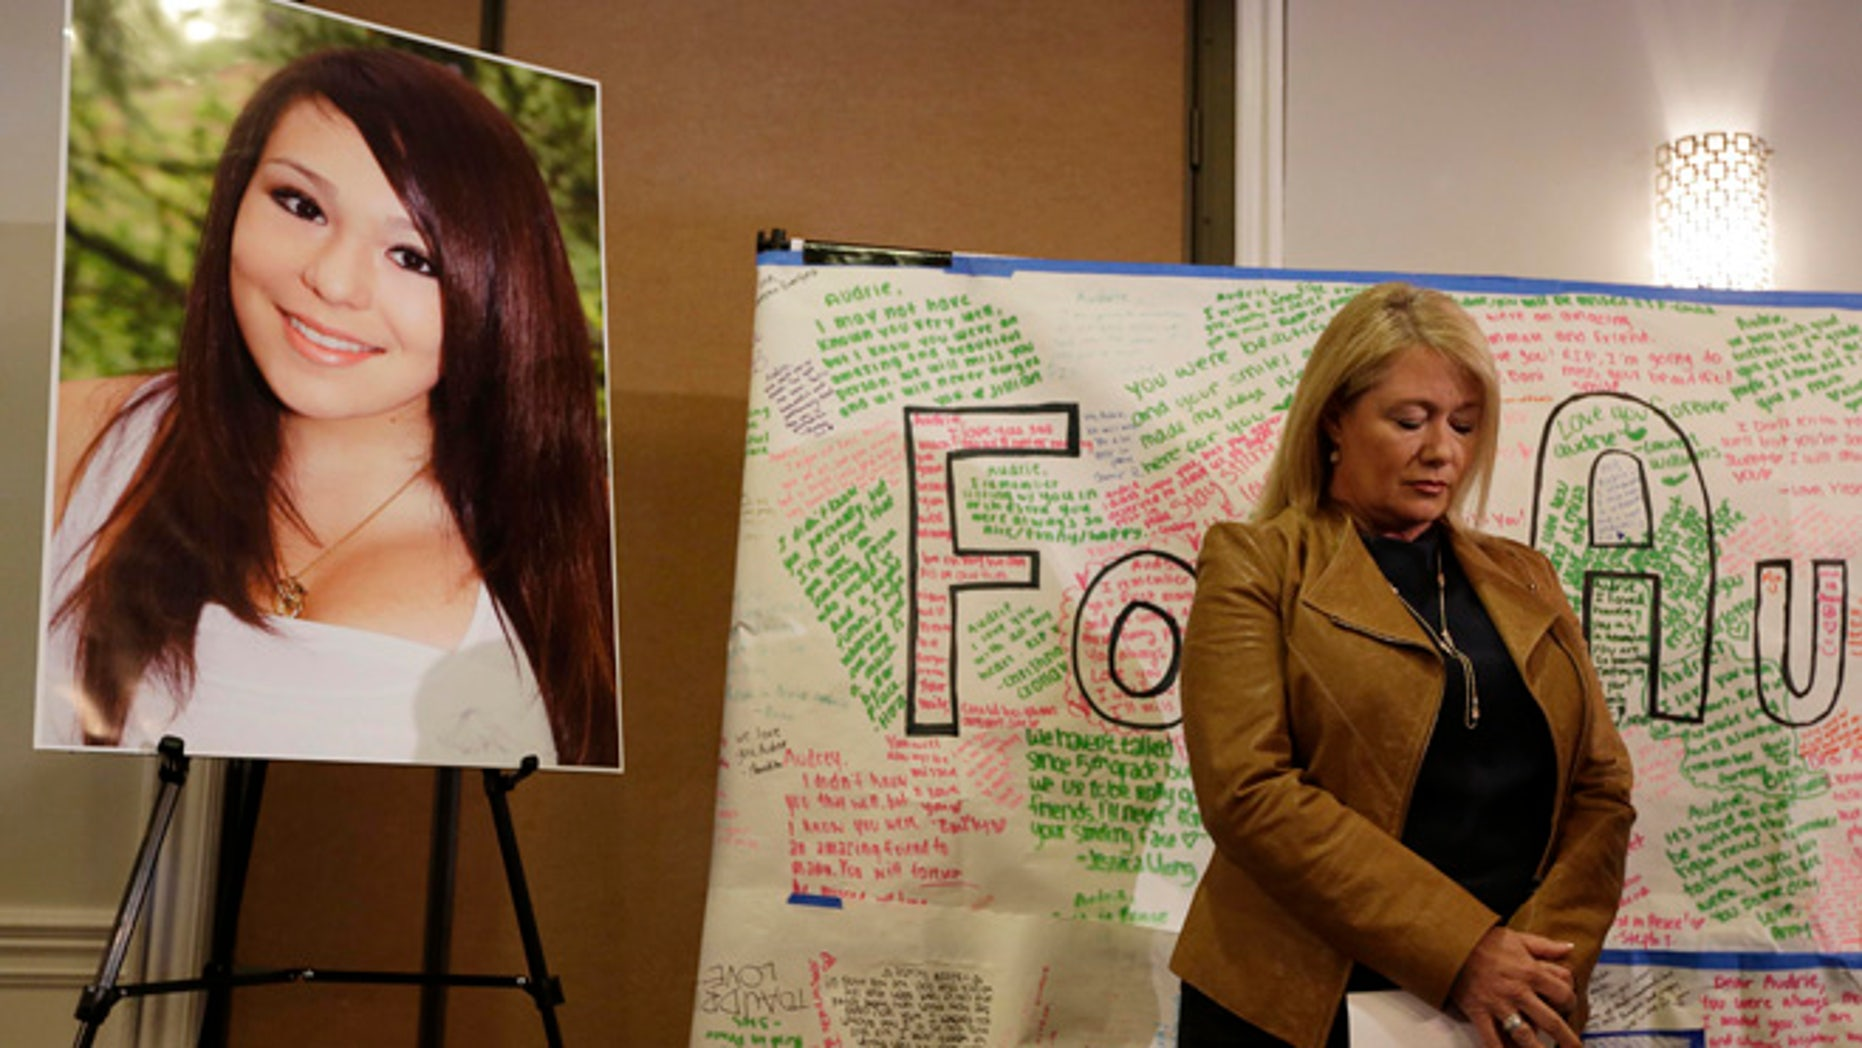 April 15: Sheila Pott, mother of Audrie Pott, stands by a photograph of her daughter and message board during a news conference in San Jose, Calif.